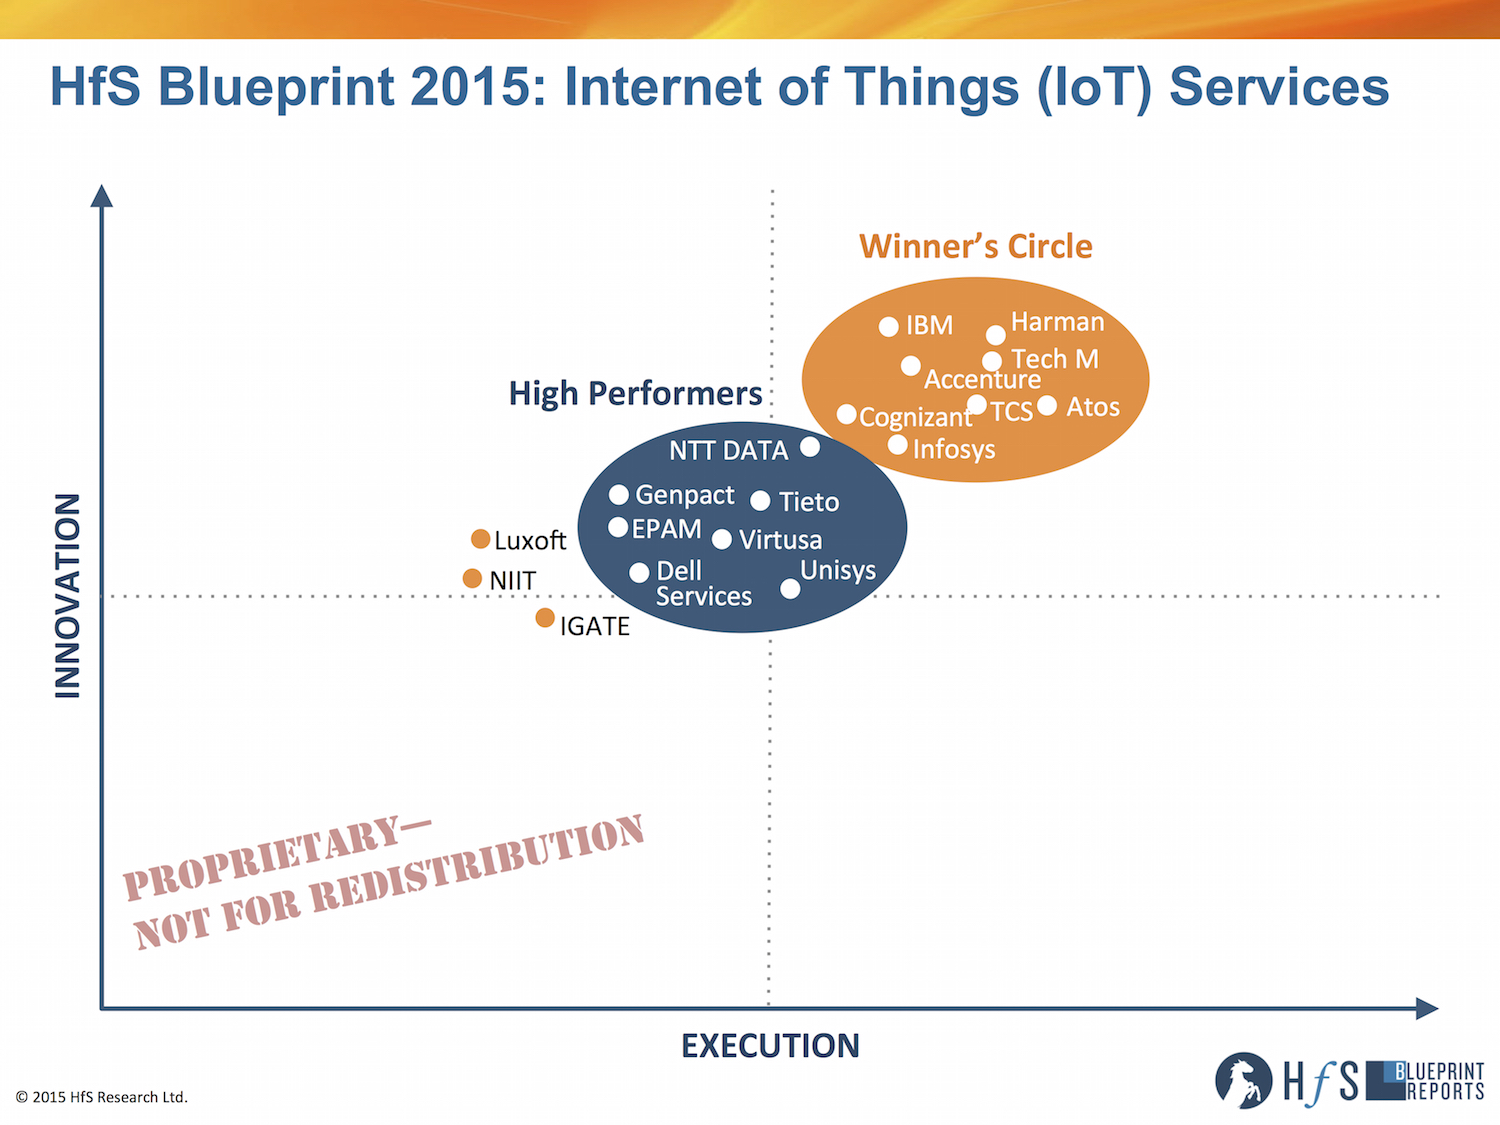 Harman, Tech Mahindra, IBM, Accenture and Atos leading the Internet of Things phenomenon